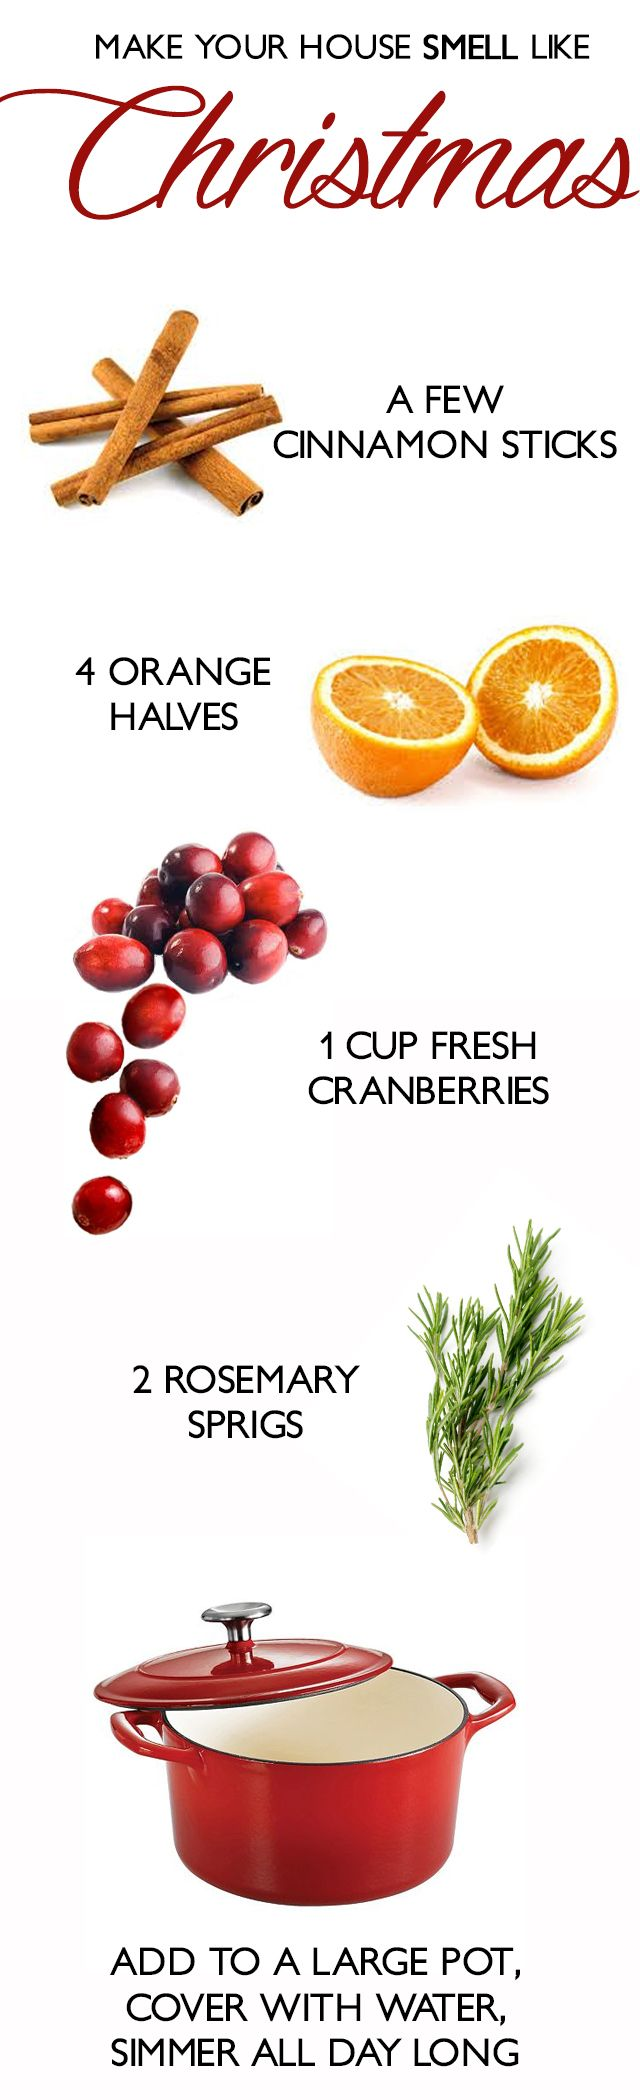 Make your house smell like CHRISTMAS! Just add cinnamon sticks, fresh oranges, cranberries, and rosemary, cover with water, and simmer on the stove all day for a natural holiday scent.: